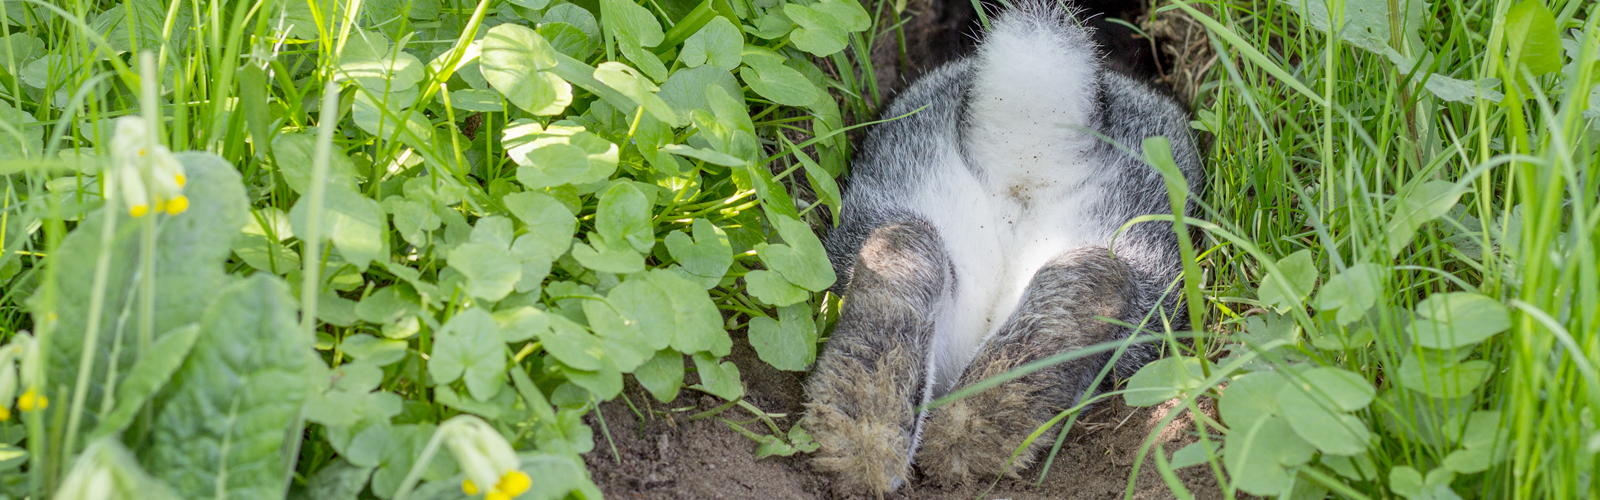 Rabbit in hole with fresh plants